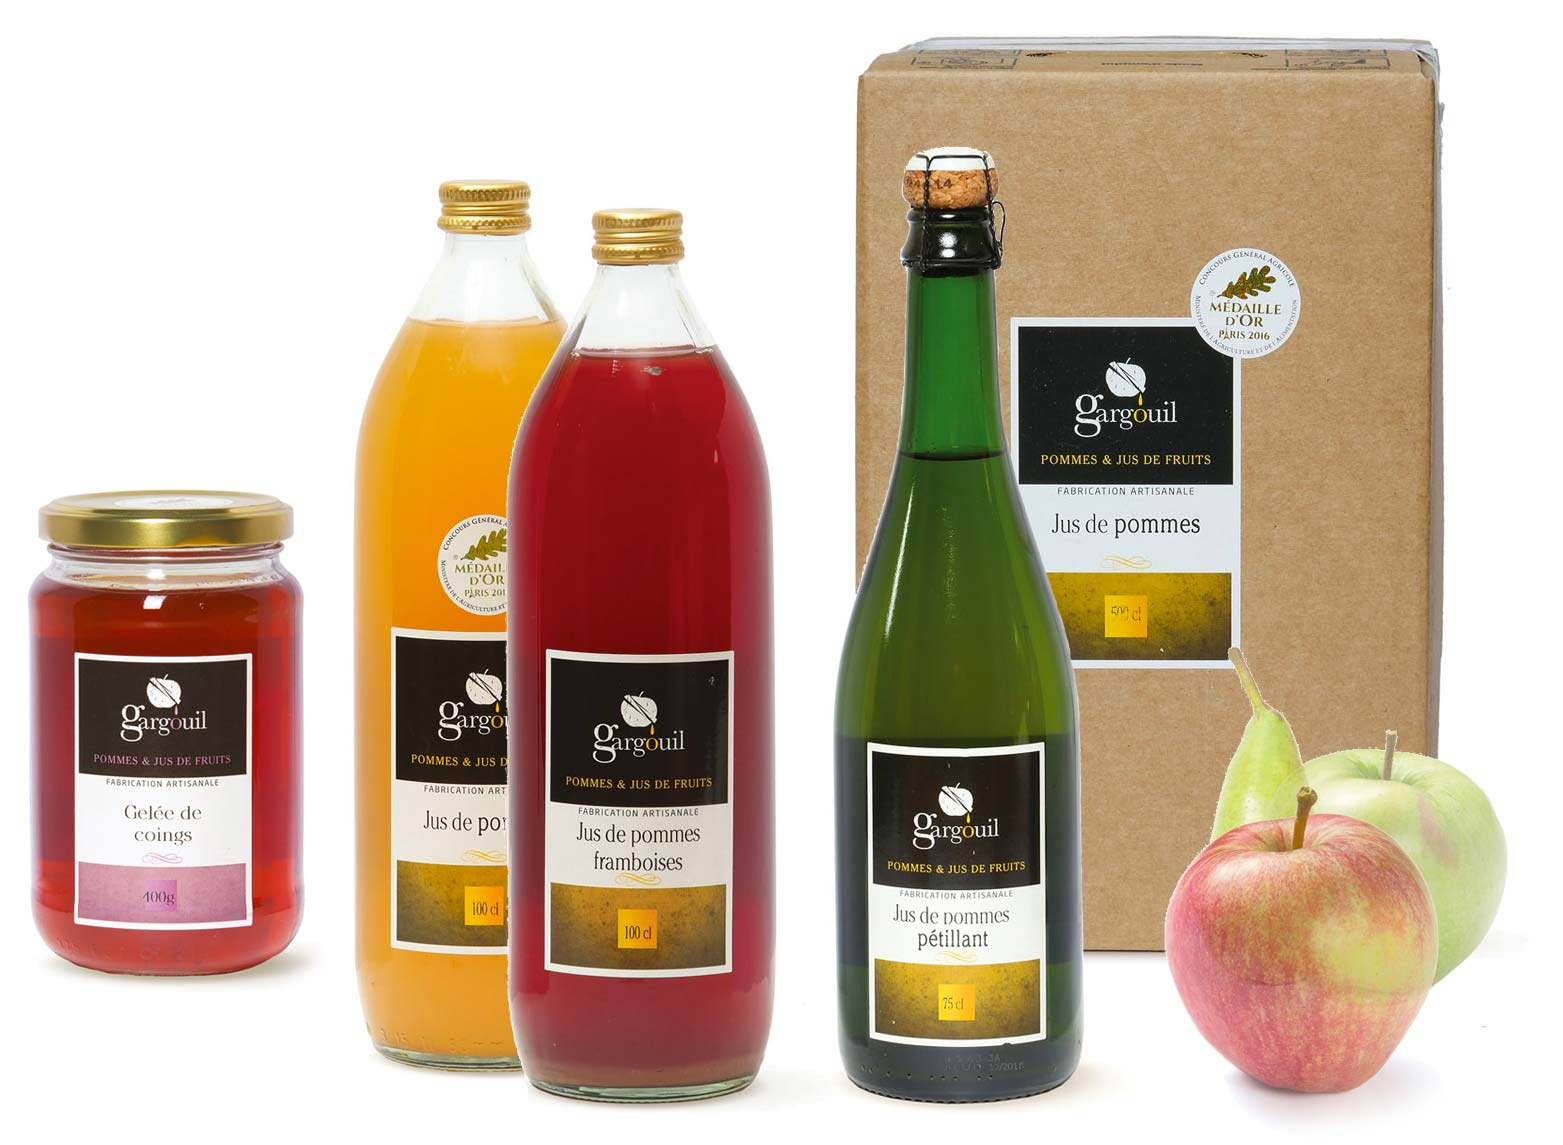 Apples, Juices & much more